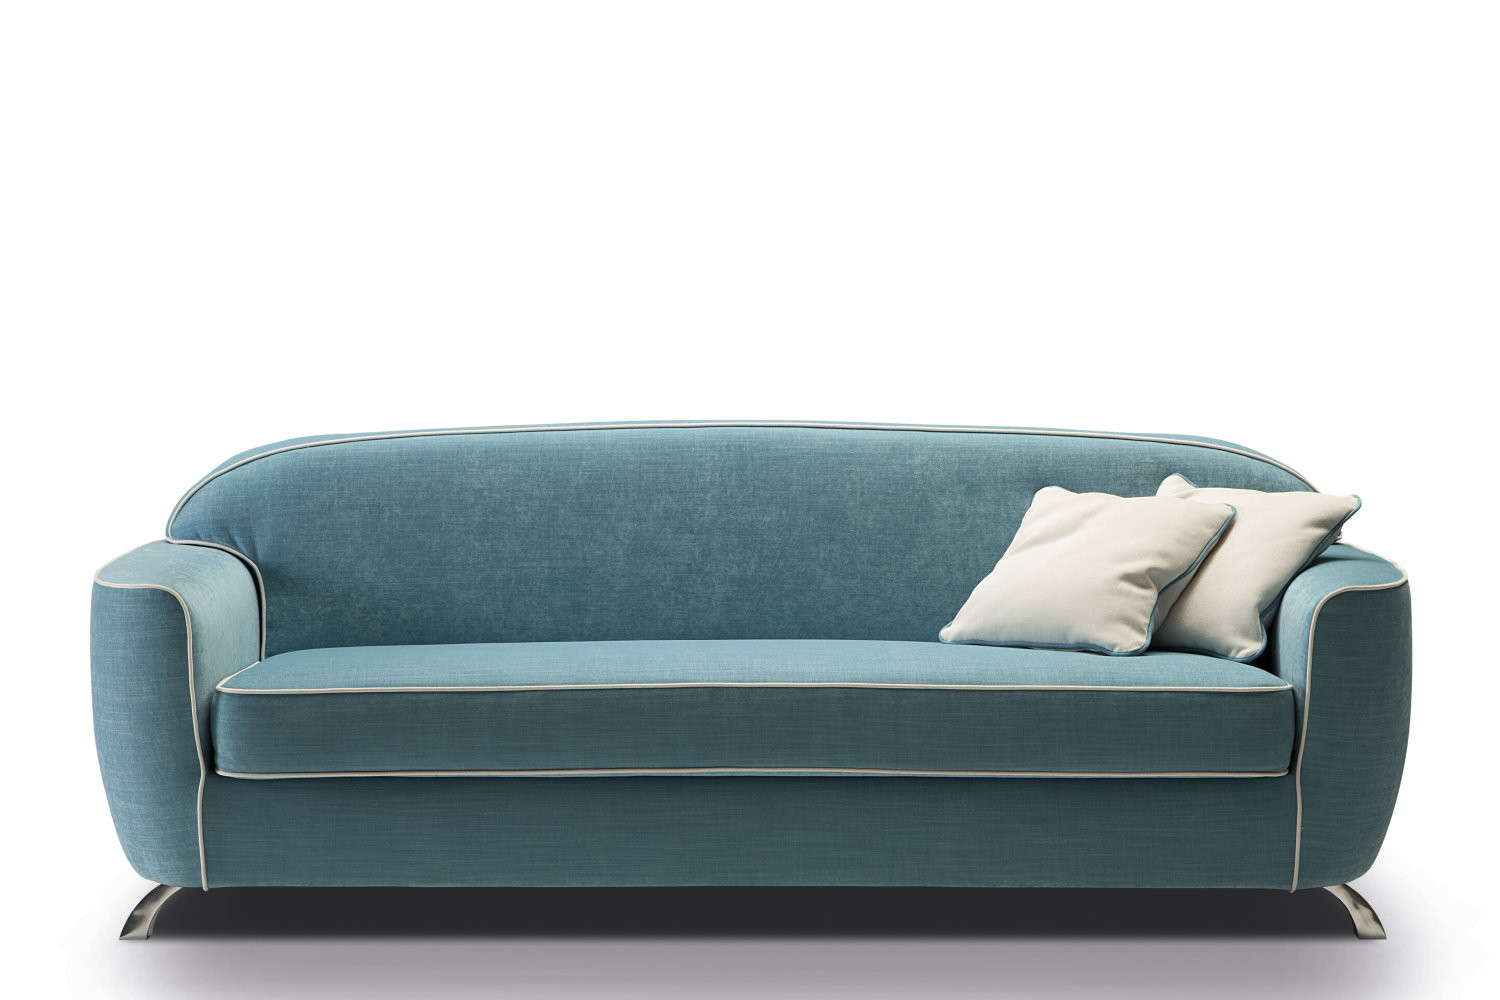 Charles vintage sofa with a 50s style for Canape annee 50